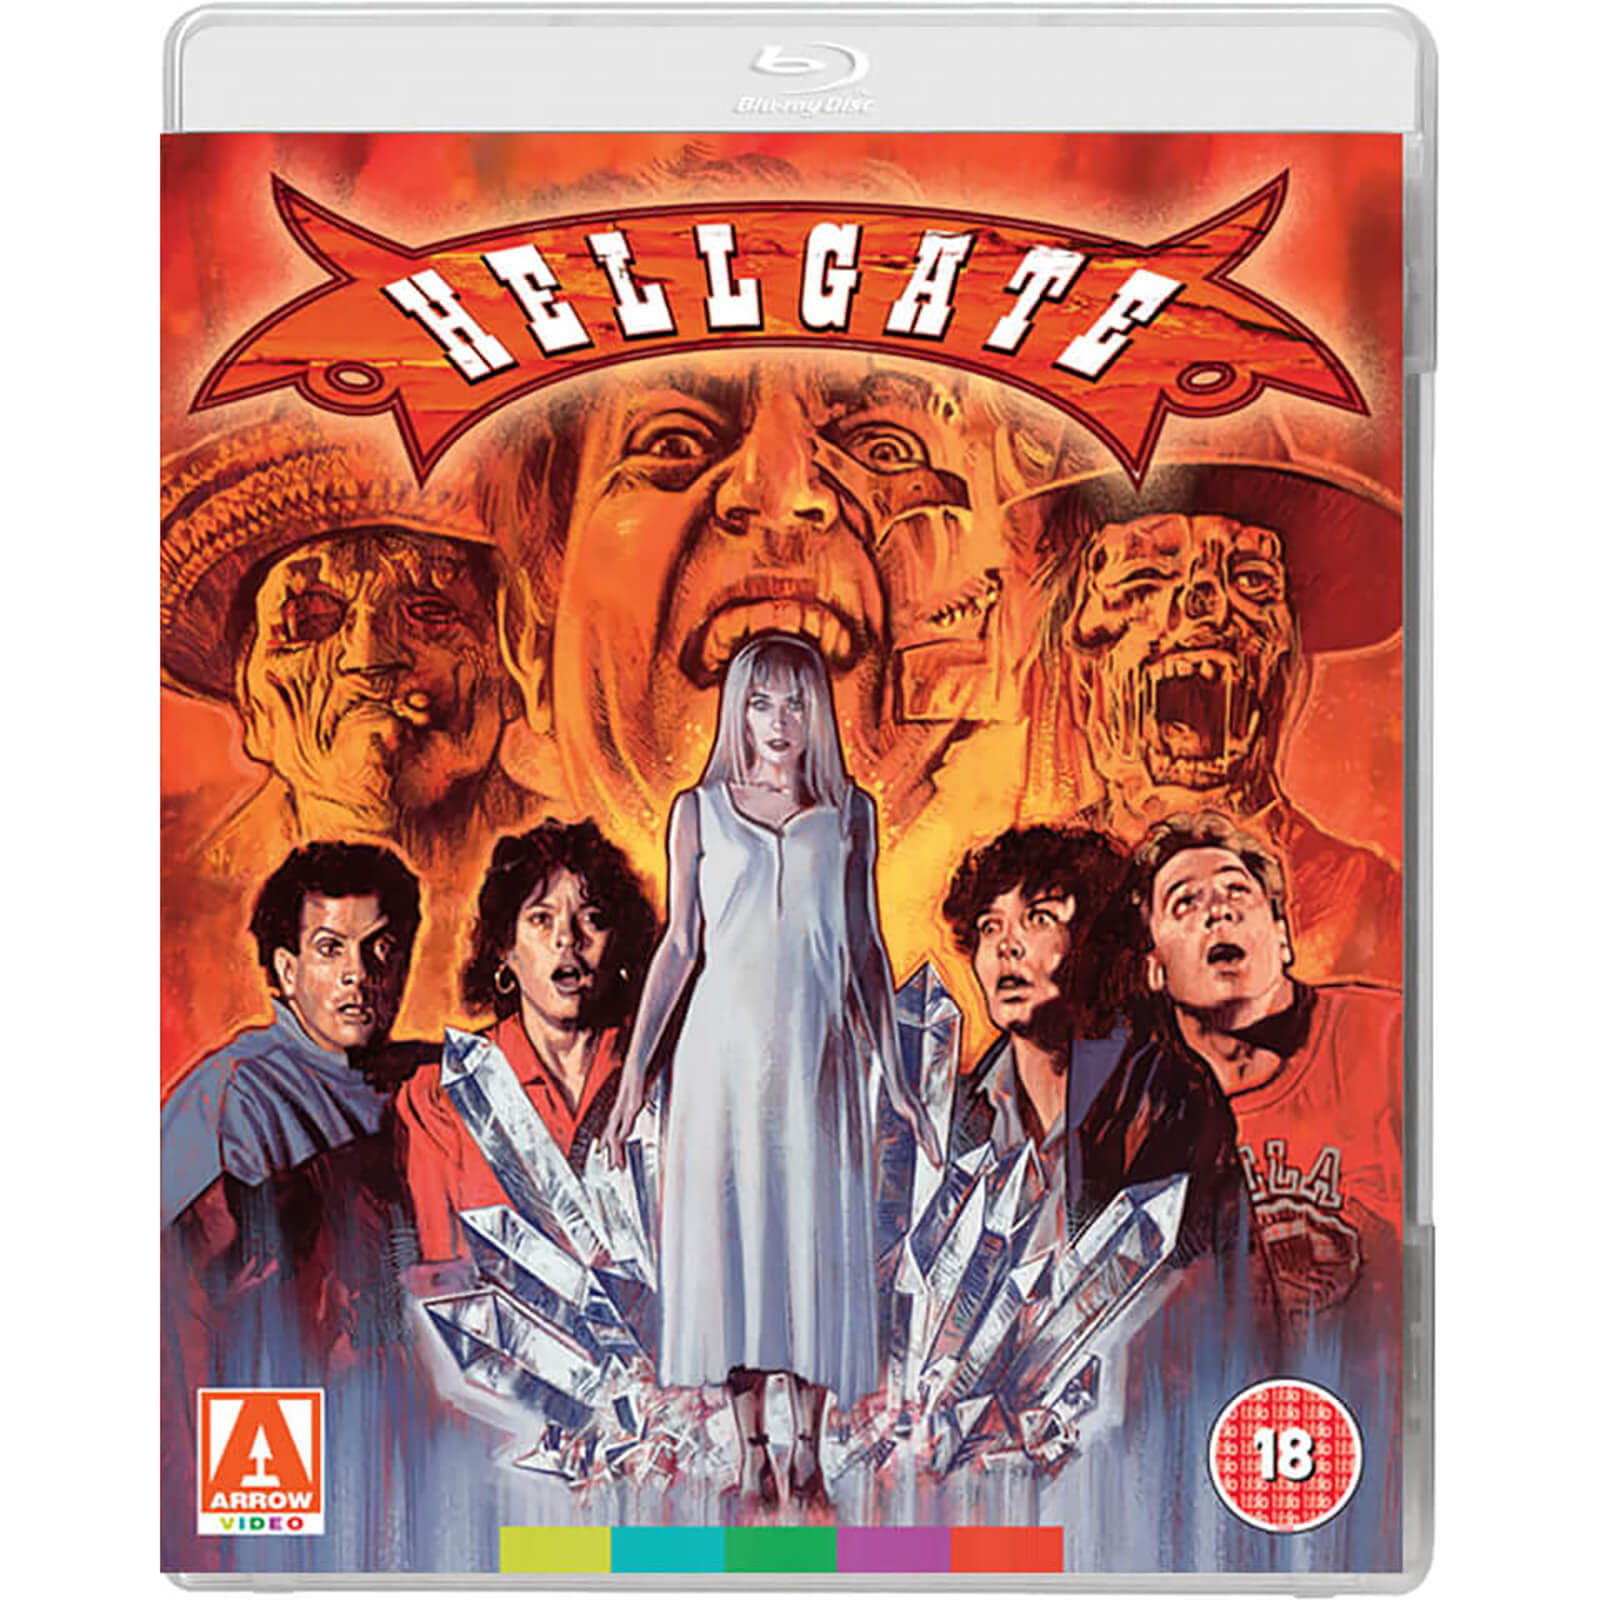 Hellgate von Arrow Video